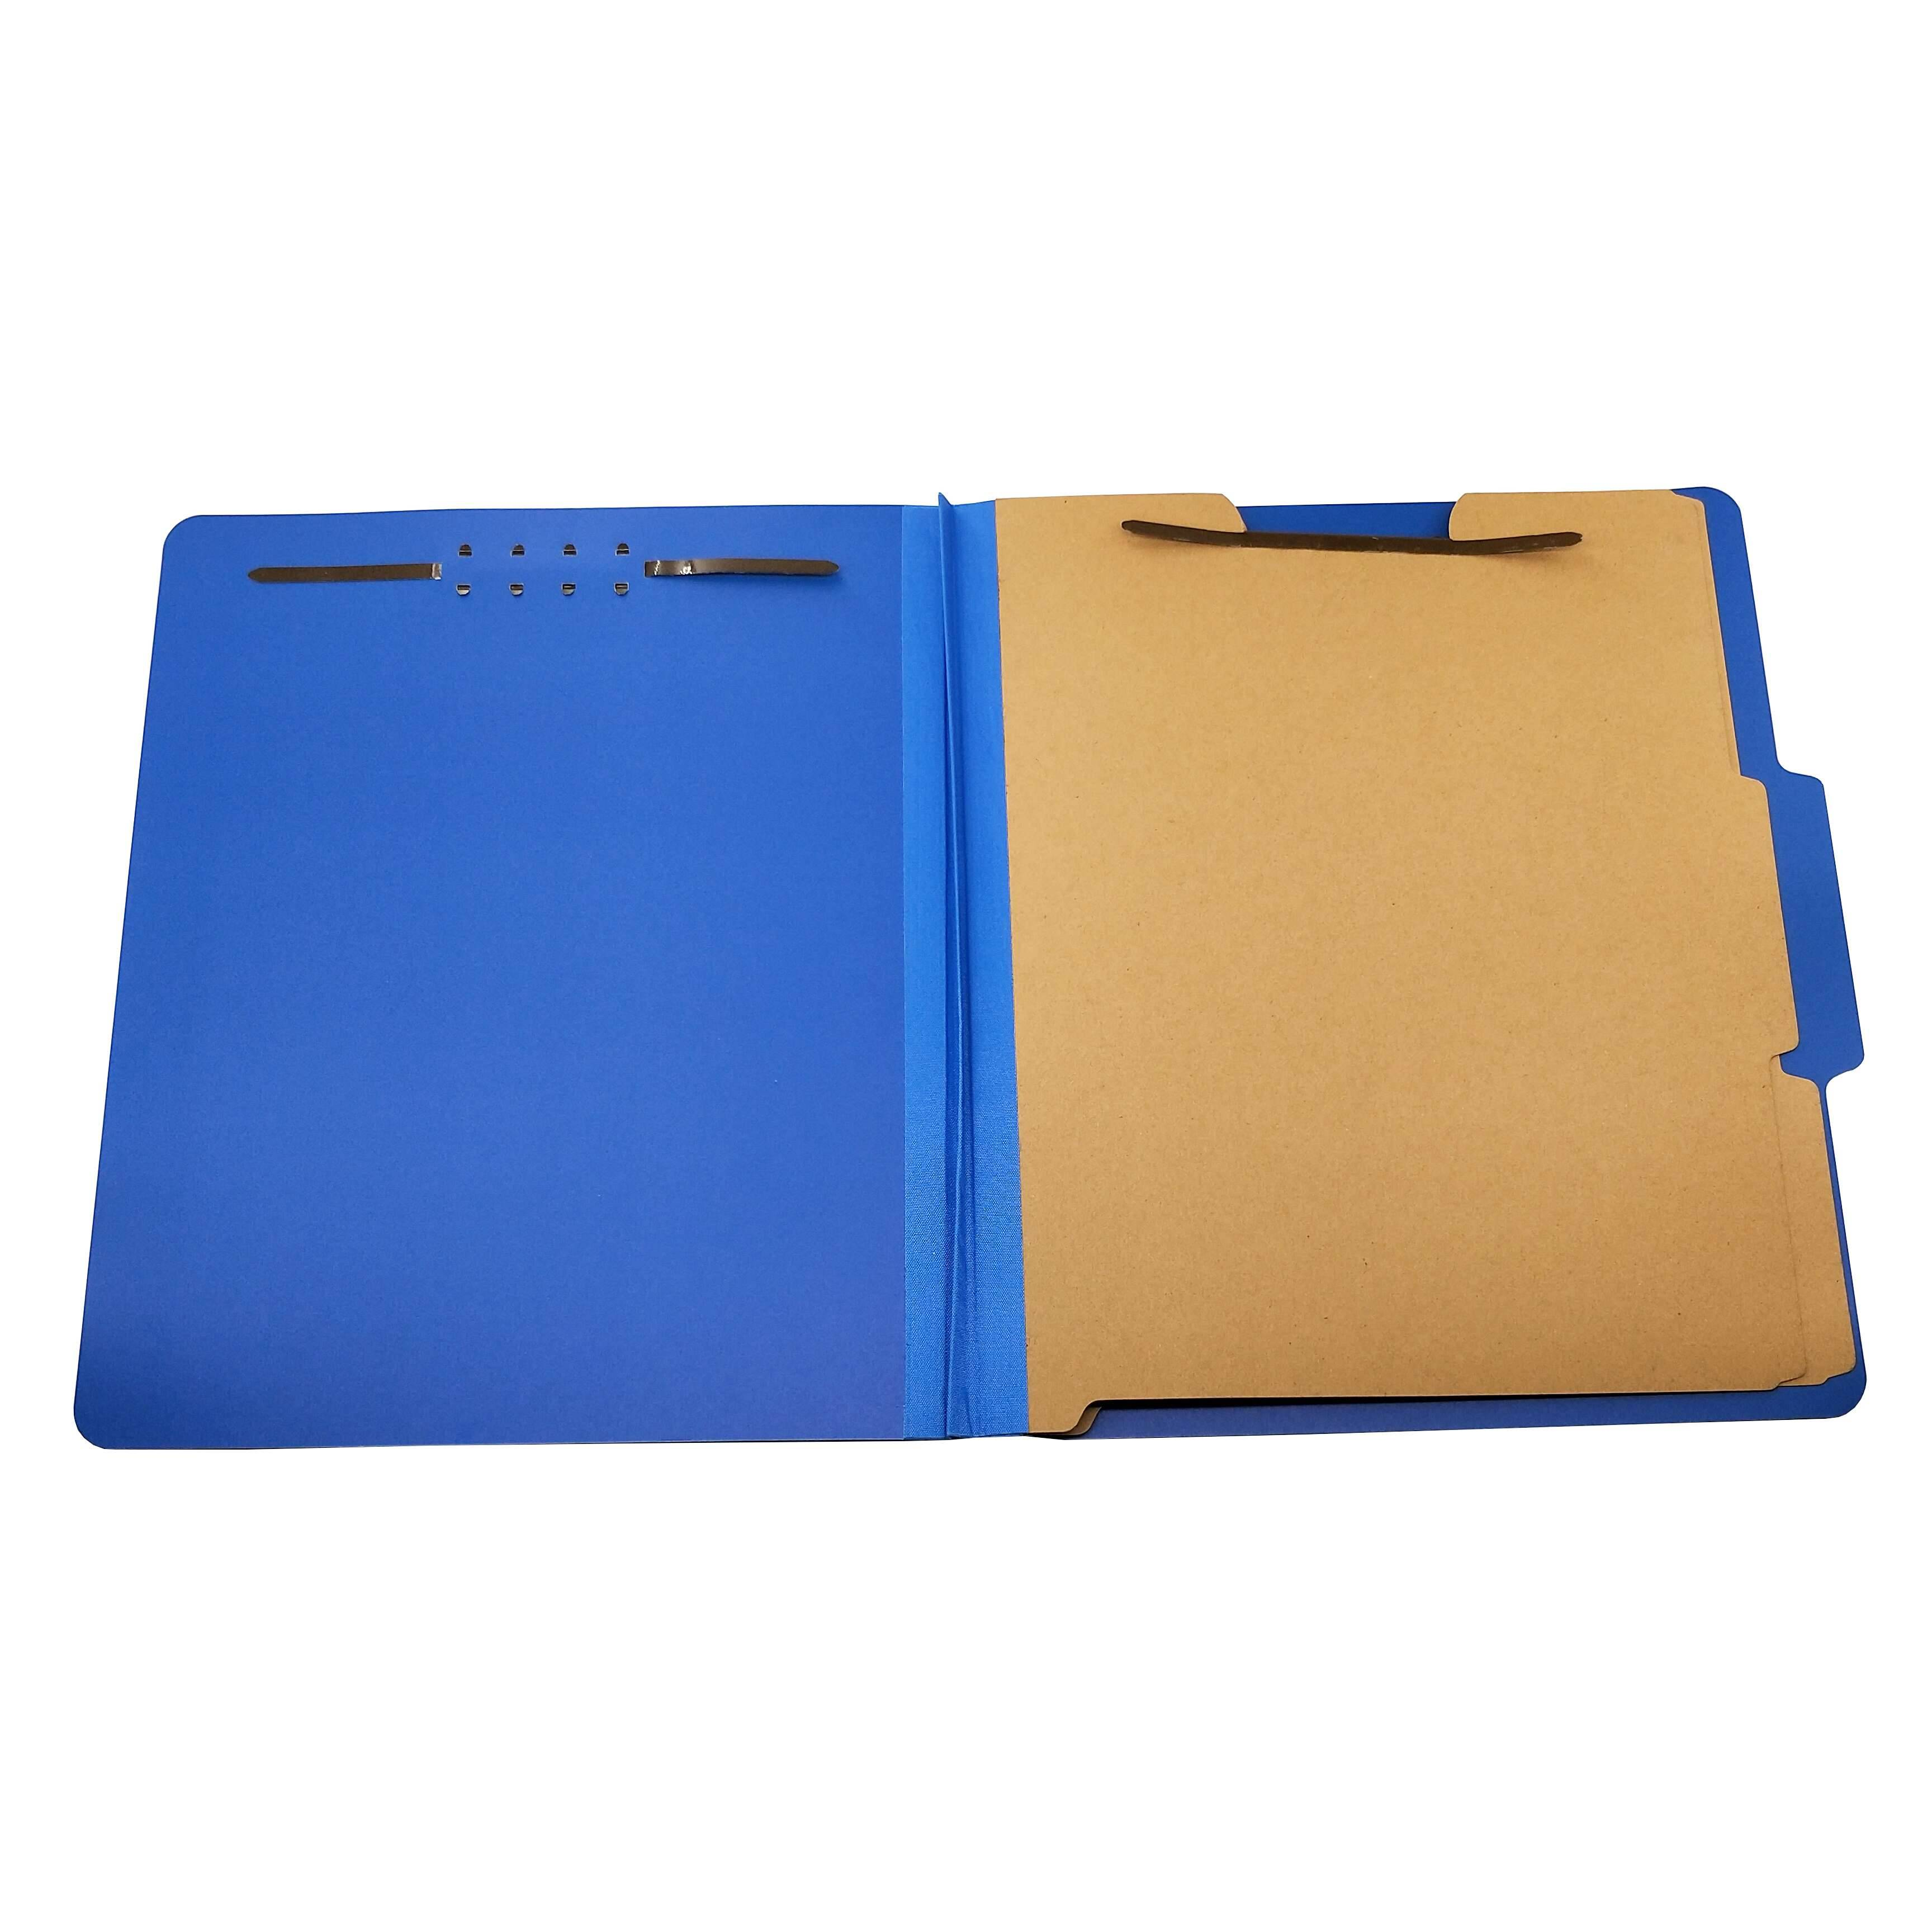 High reputation DuPont paper travel backpack - Amazon Professional Suppliers Pressboard Classification File Folder with Fasteners 2 Dividers – Ruiyinxiang